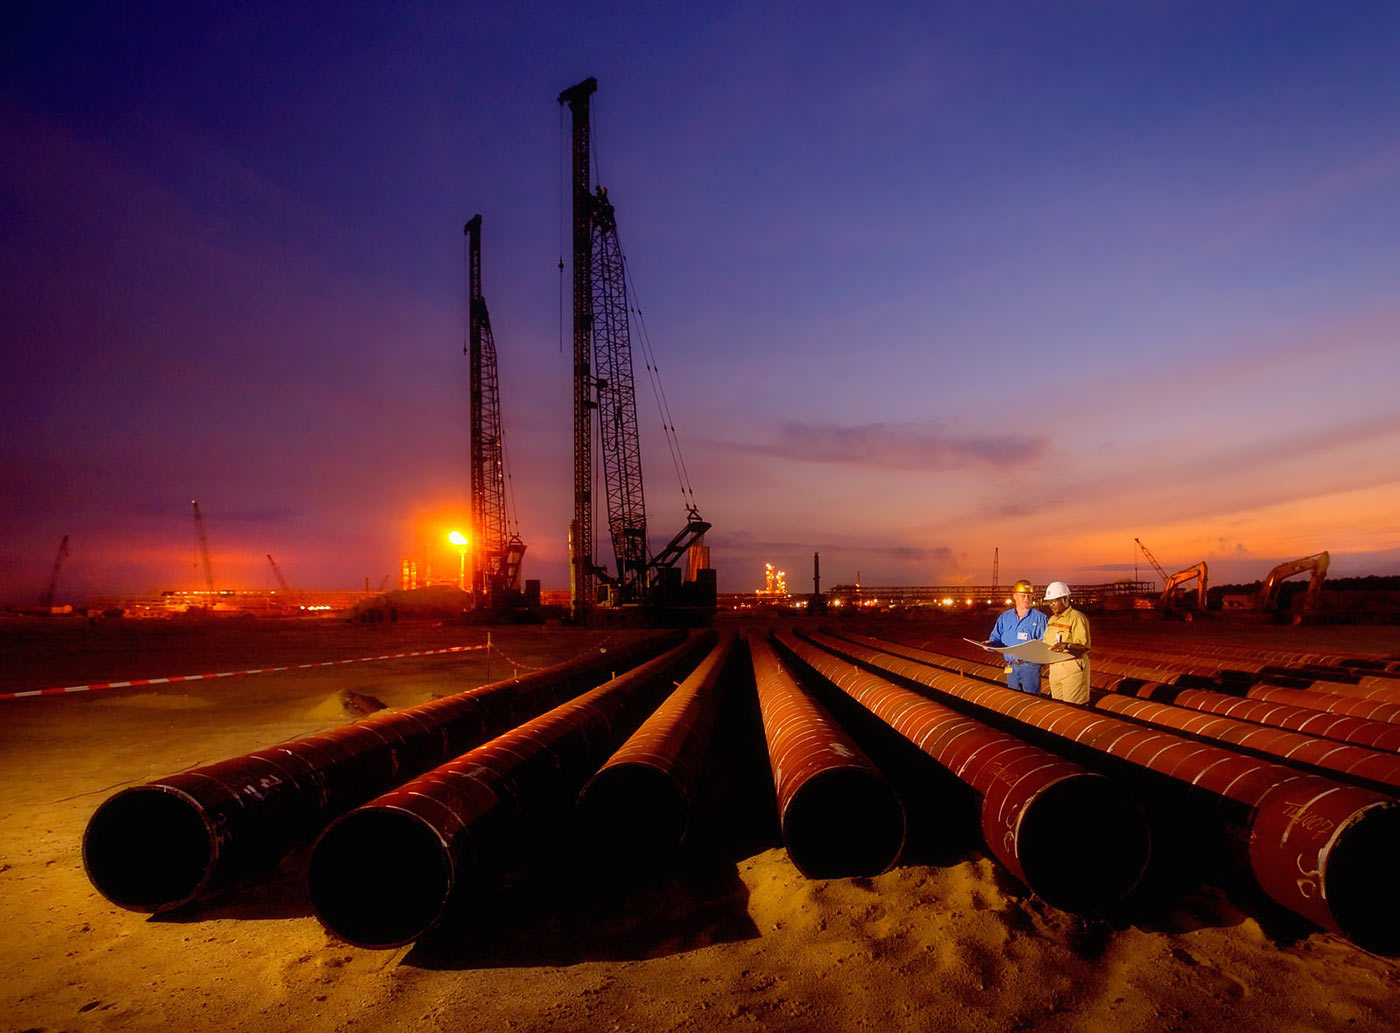 Gas pipeline installation on oil field - petrochemical photography portfolio